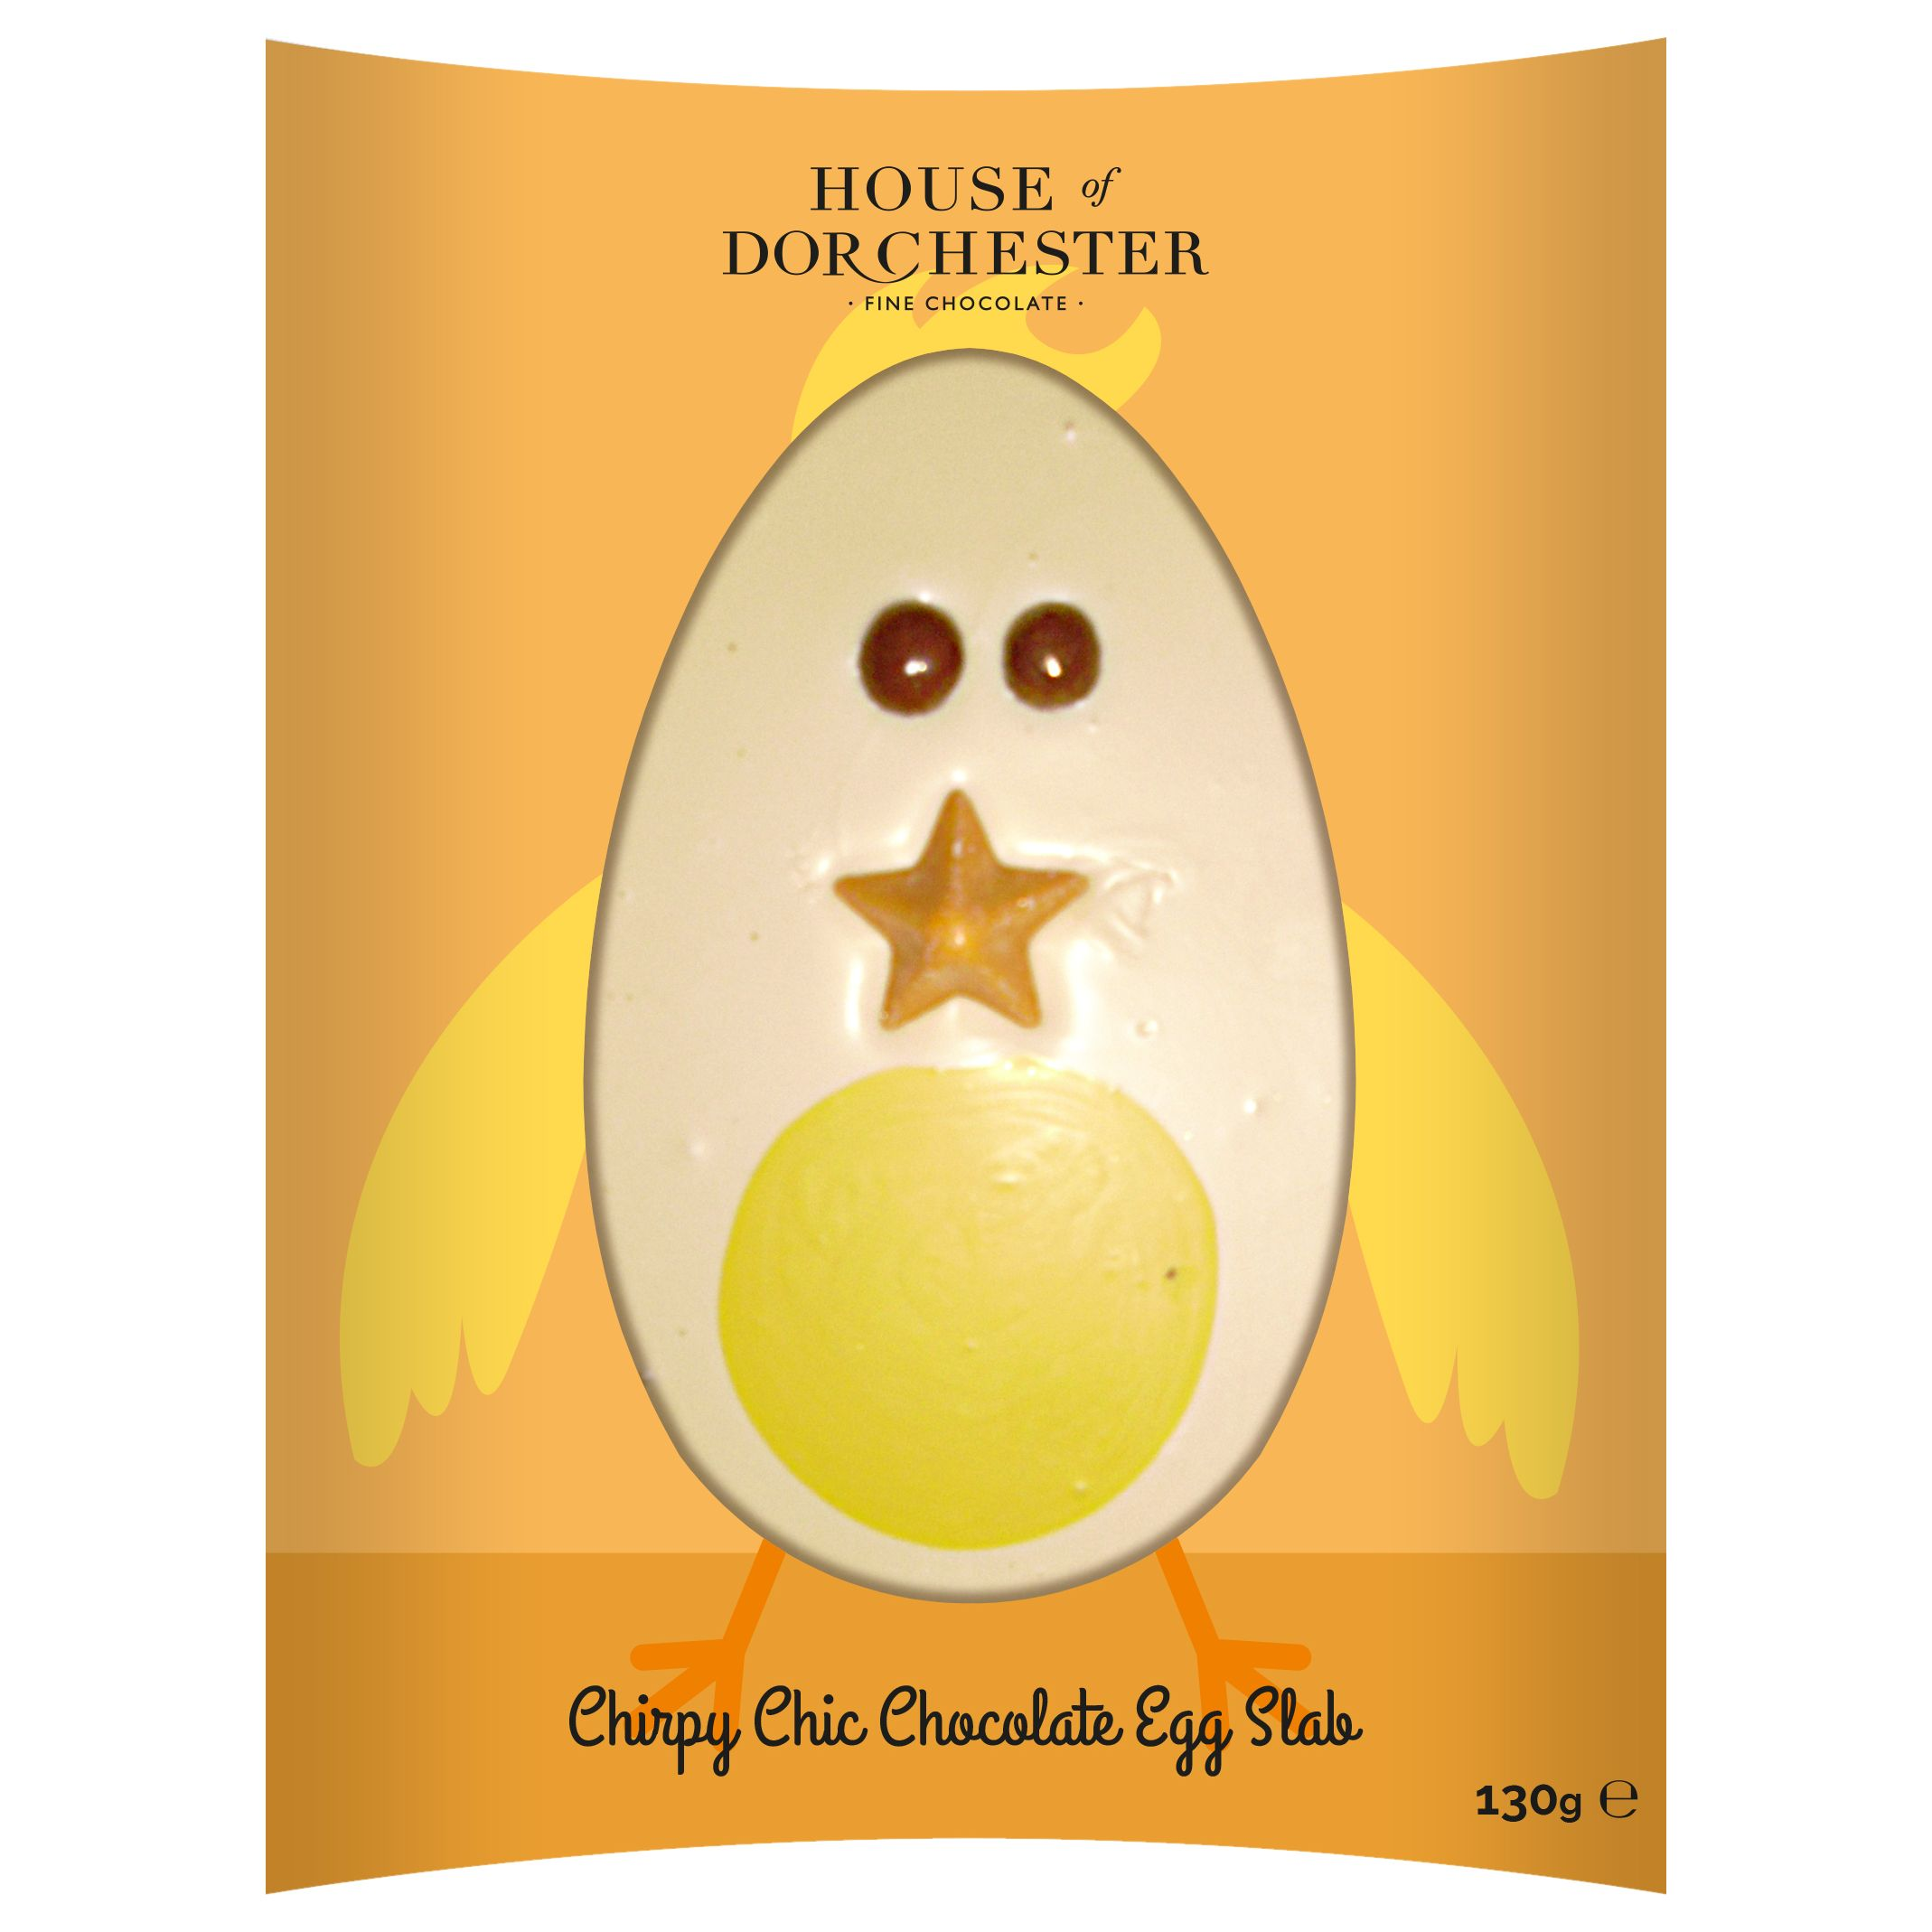 House of Dorchester House of Dorchester 'Chirpy Chic Chocolate Egg Slab', 130g